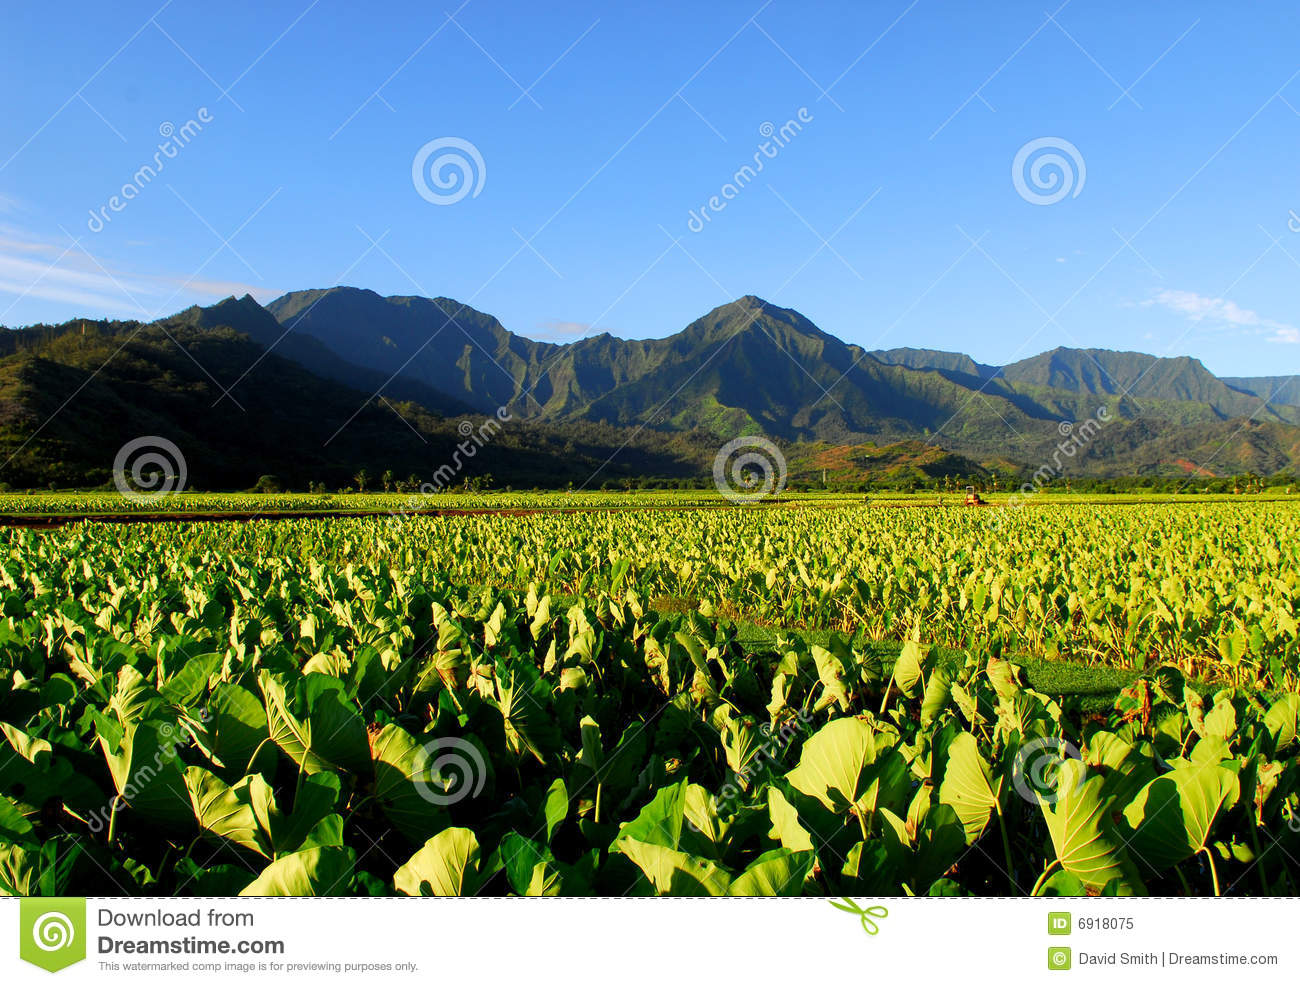 Taro field in Kauai Hawaii